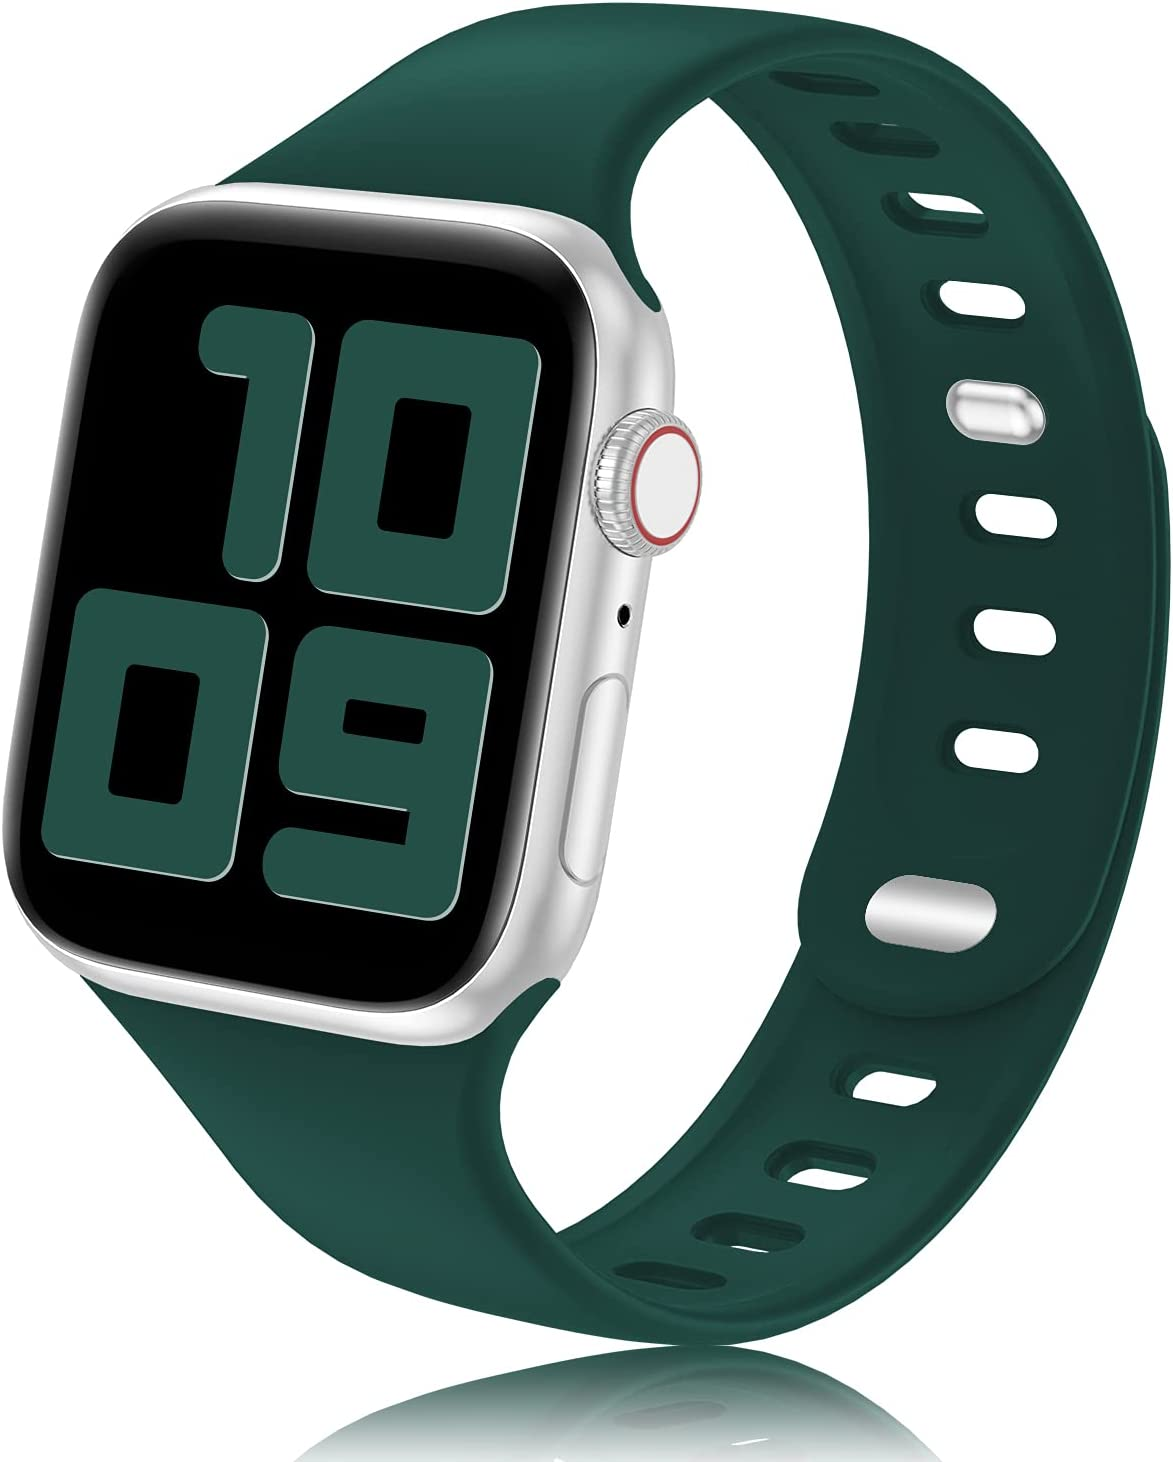 YAXIN Sport Band Compatible with Apple Watch Bands 38mm 40mm 44mm 42mm Women Men, Soft Silicone 2-clasp iWatch Bands Replacement Strap Compatible for iWatch SE Series 6/5/4/3/2/1, Dark Green